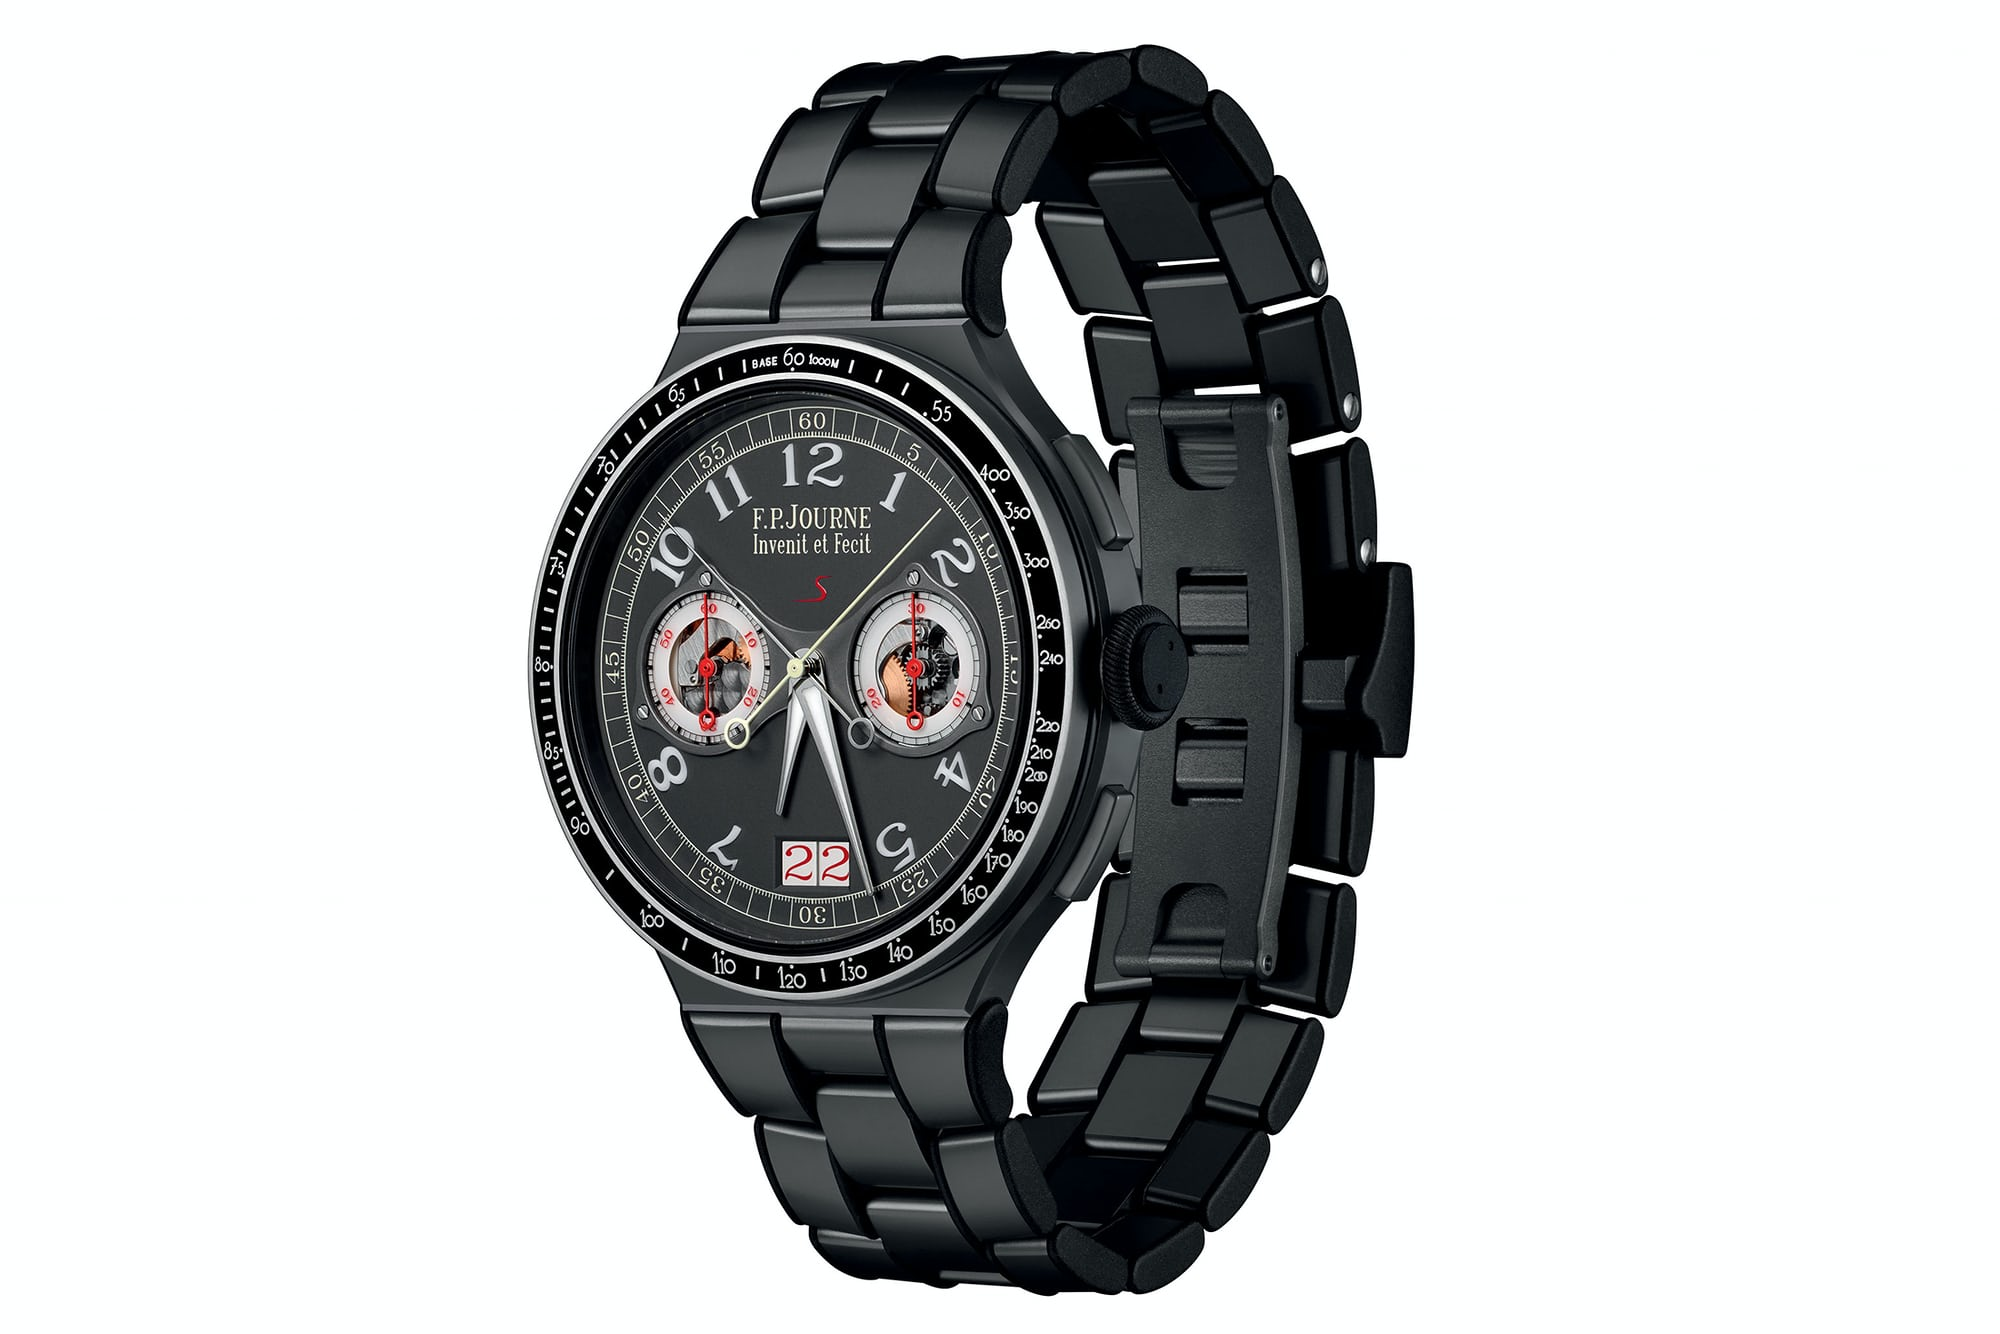 <p>The LineSport is known for sporty, light watches. This one, with its aluminum movement, is no exception.</p>